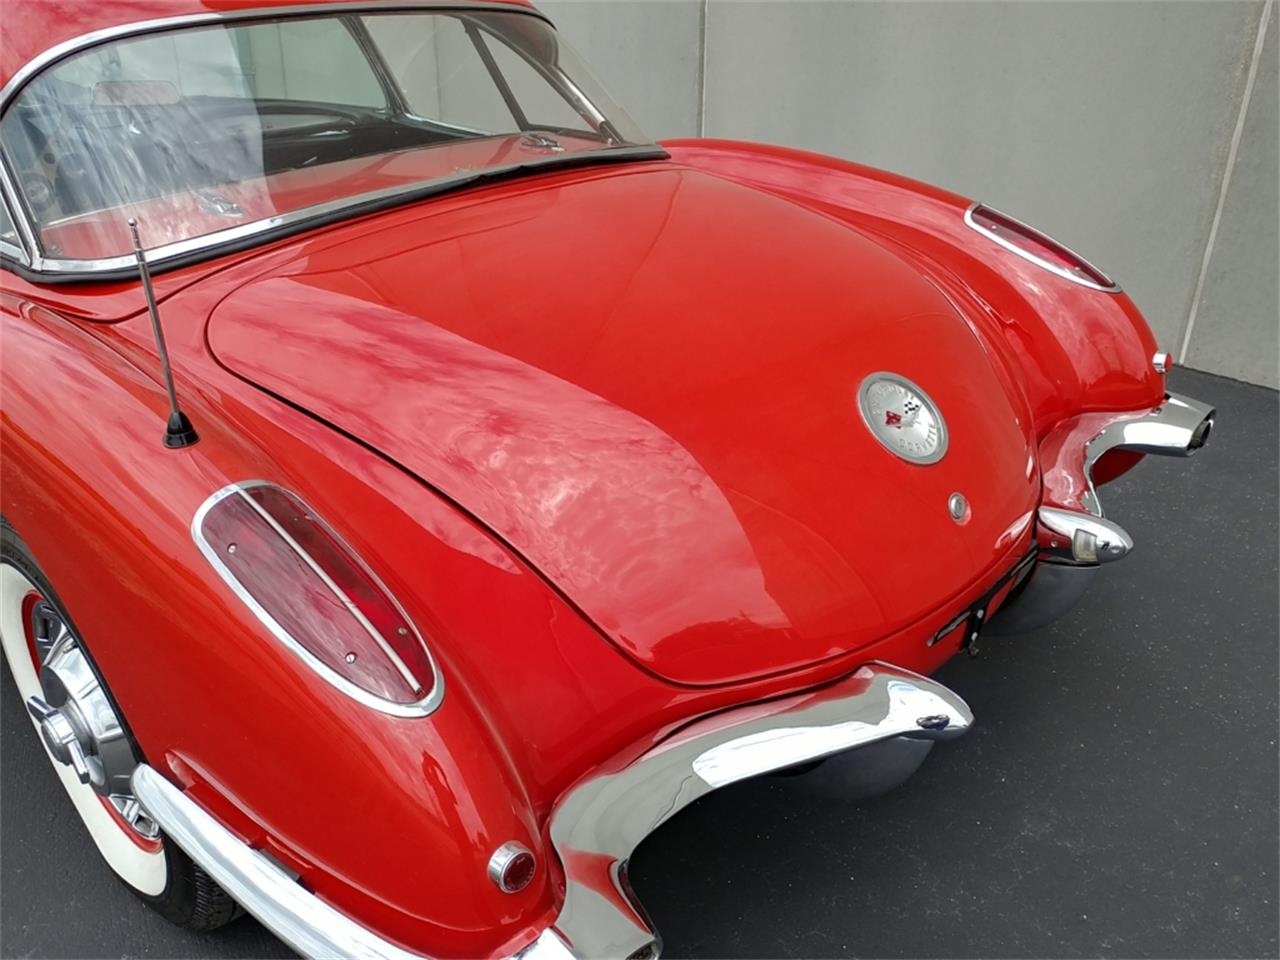 1960 Chevrolet Corvette for sale in N. Kansas City, MO – photo 4